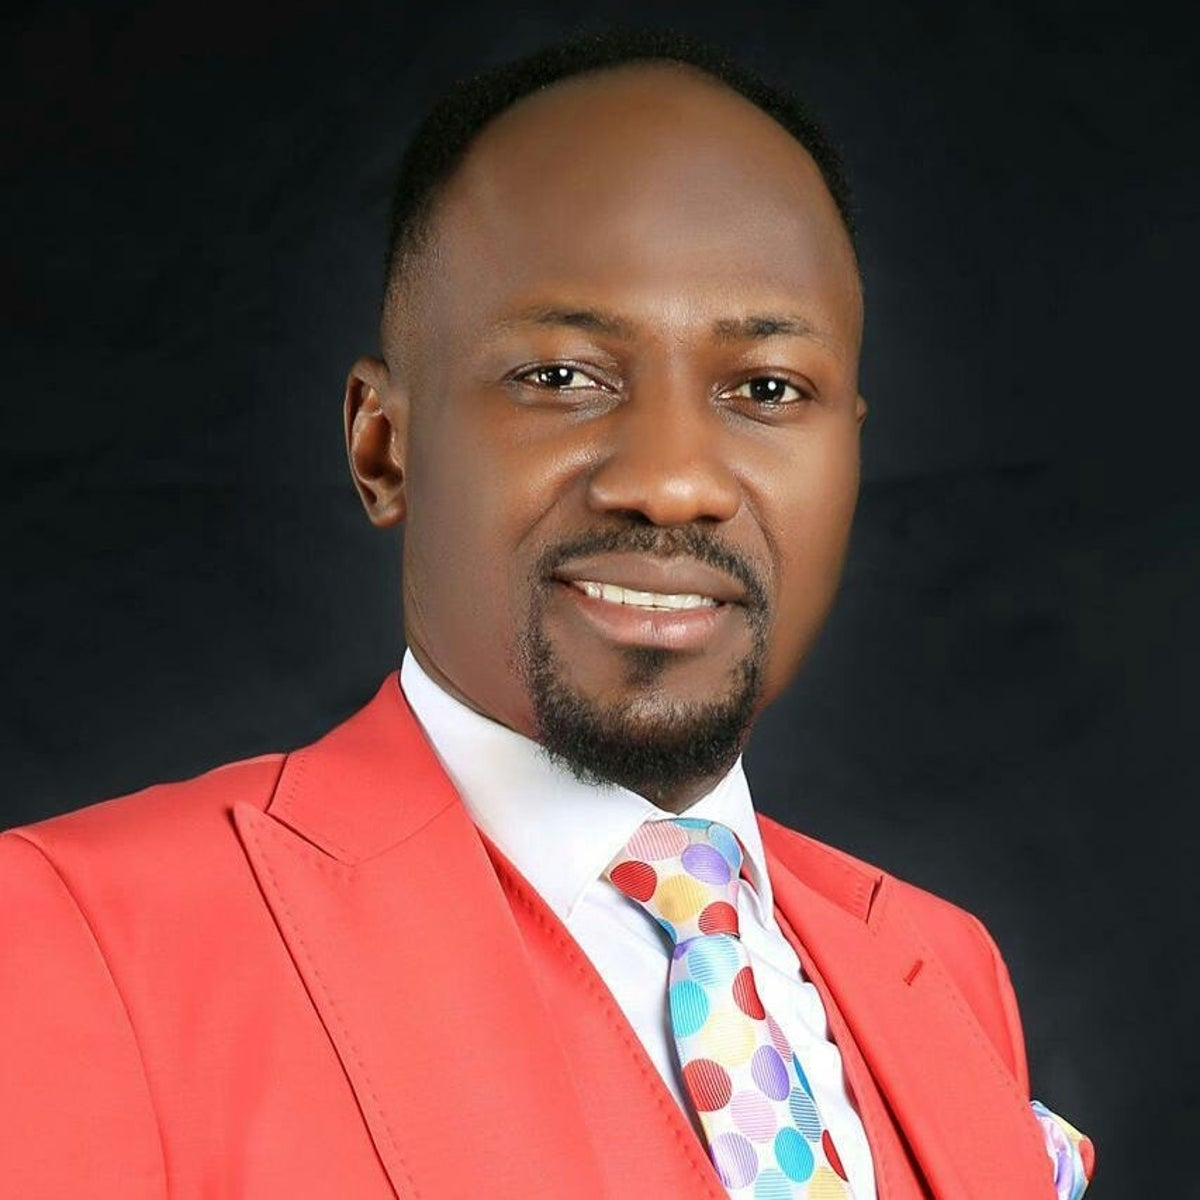 Nigeria news : Apostle Suleman sues Pastor Davids for N5bn over alleged libel